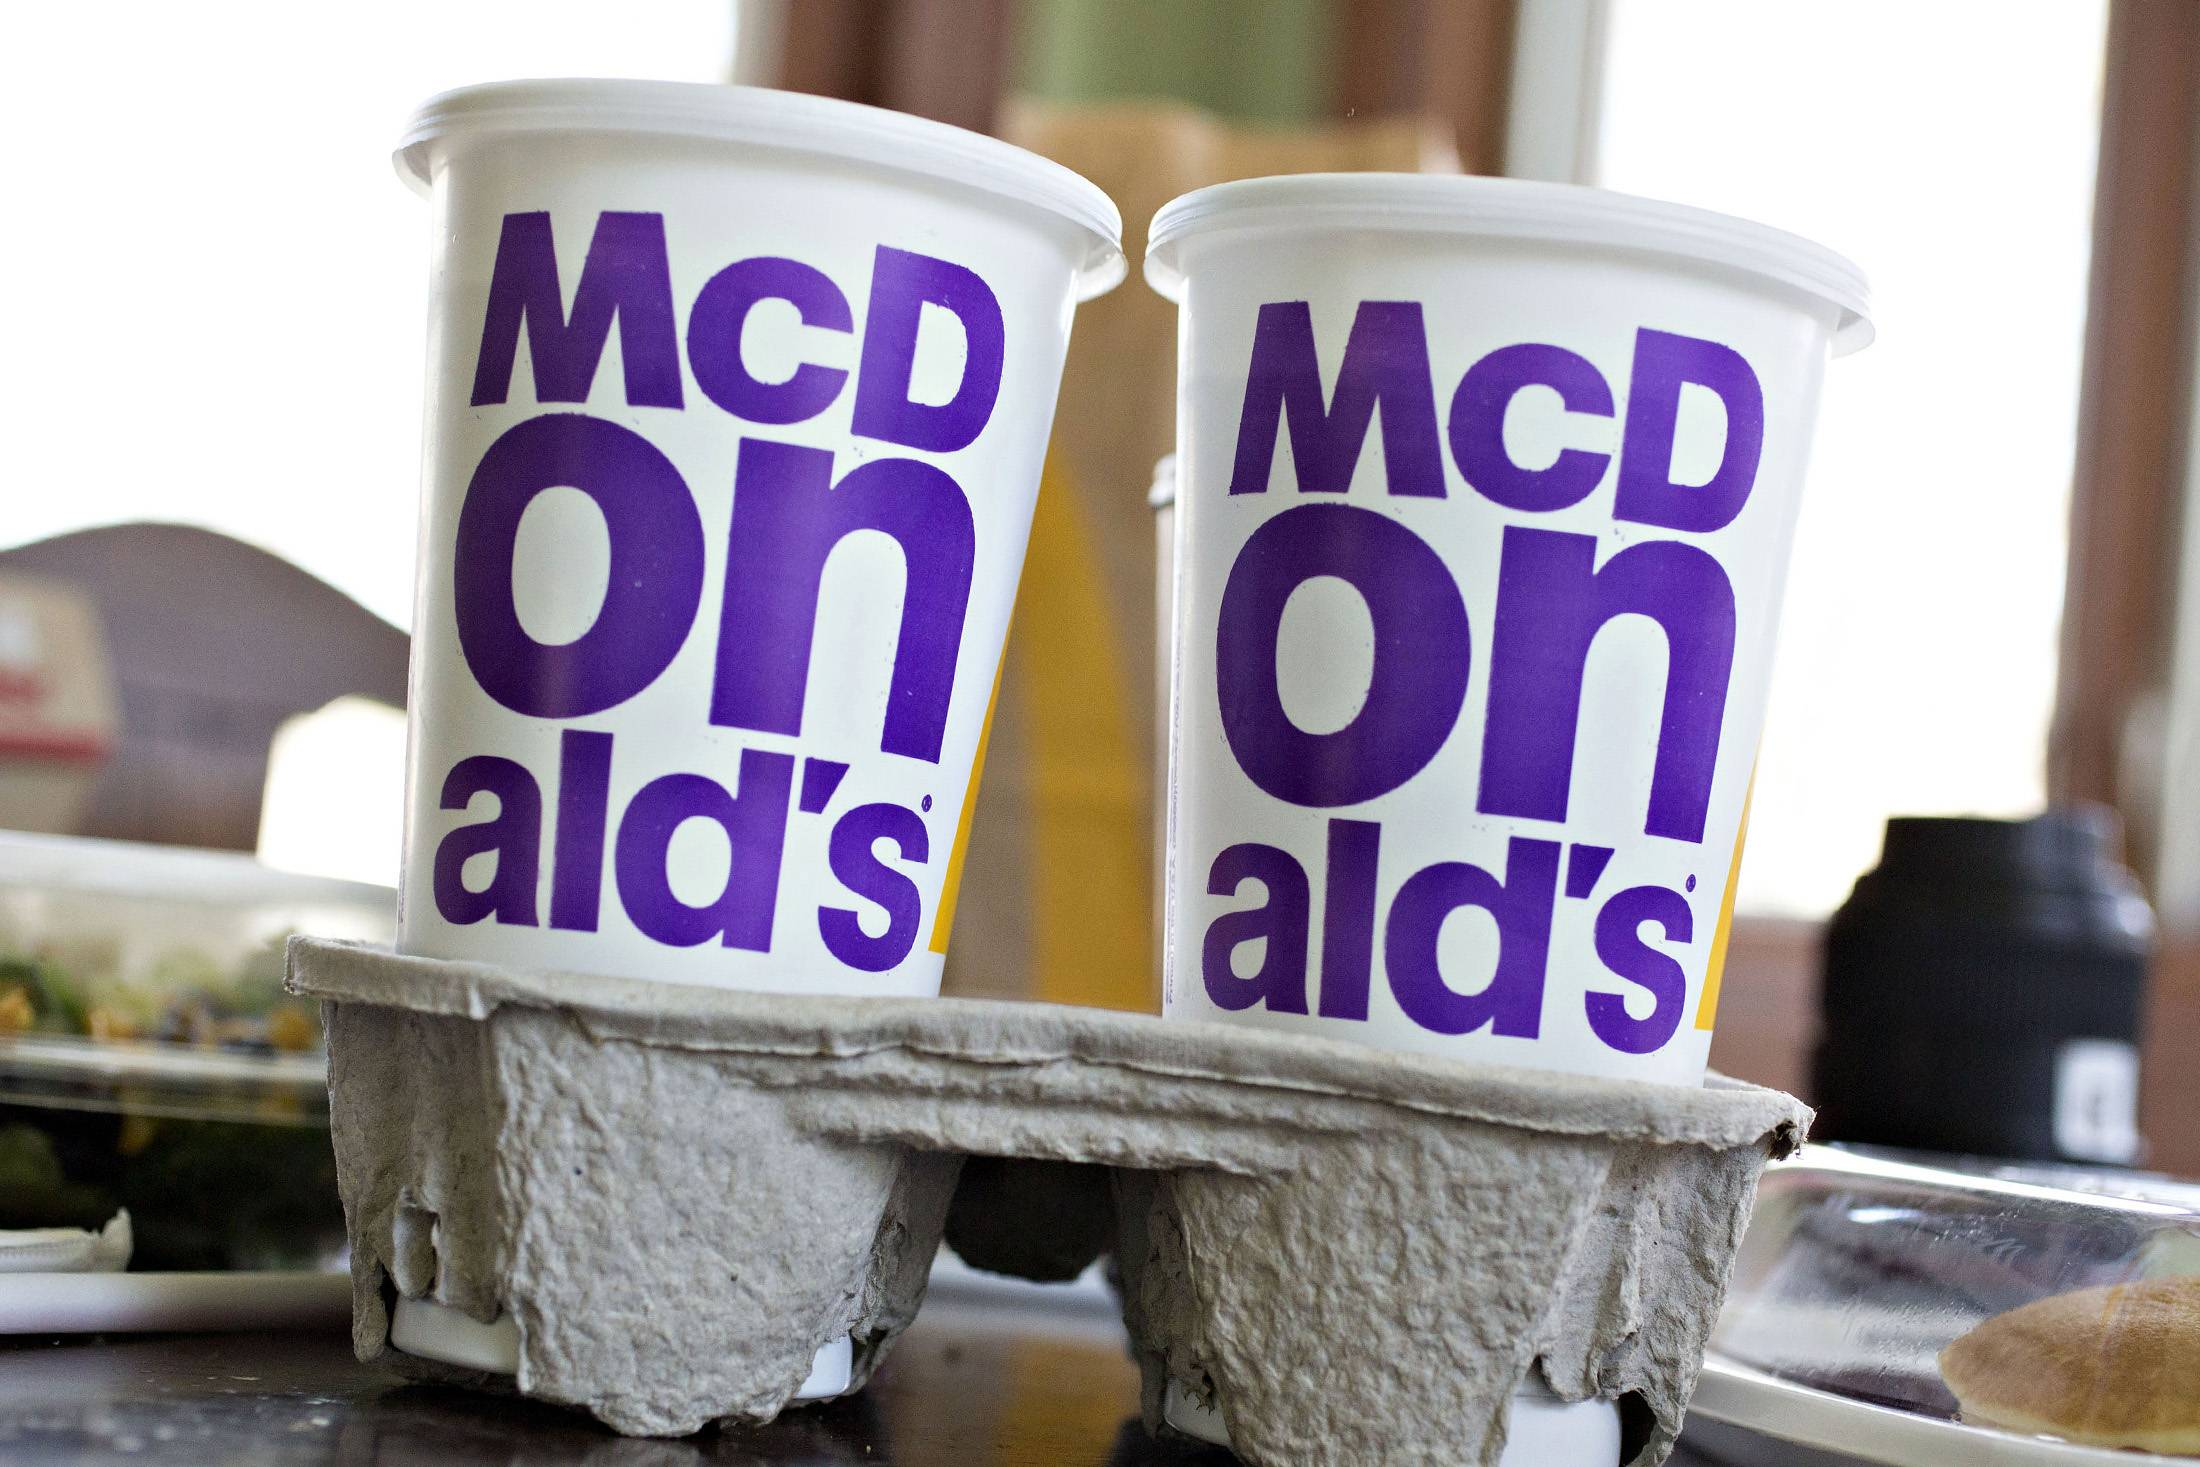 McDonald's plans to offer $1 sodas and $2 McCafe specialty drinks across the U.S. It's turning to higher-margin beverages at a time when cheap grocery prices are prodding more Americans to eat at home.